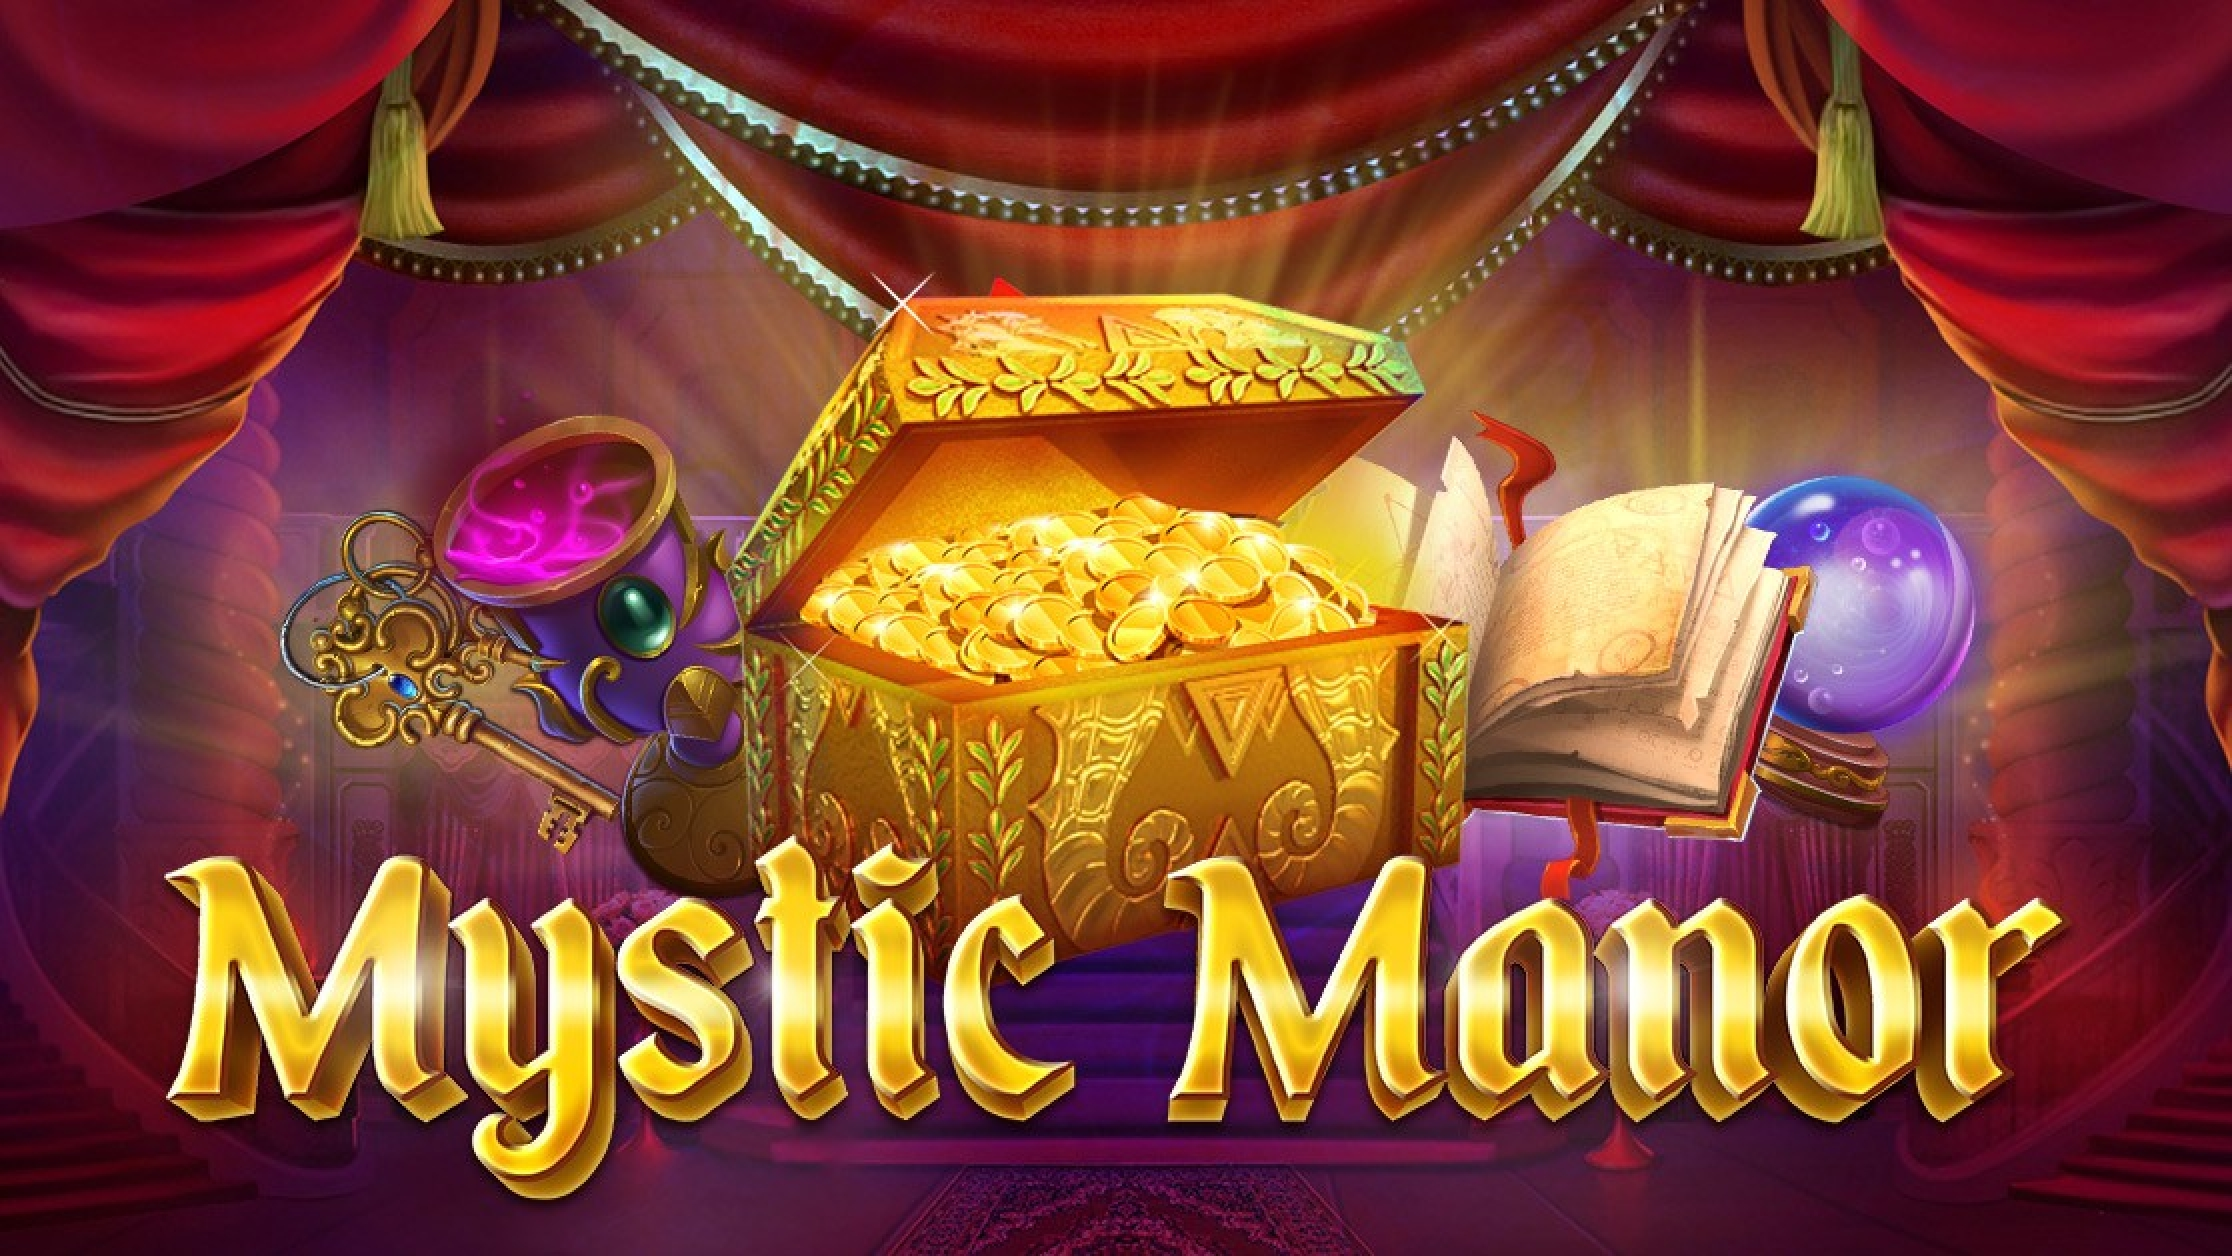 Mystic Manor Online Slot Demo Game by PariPlay